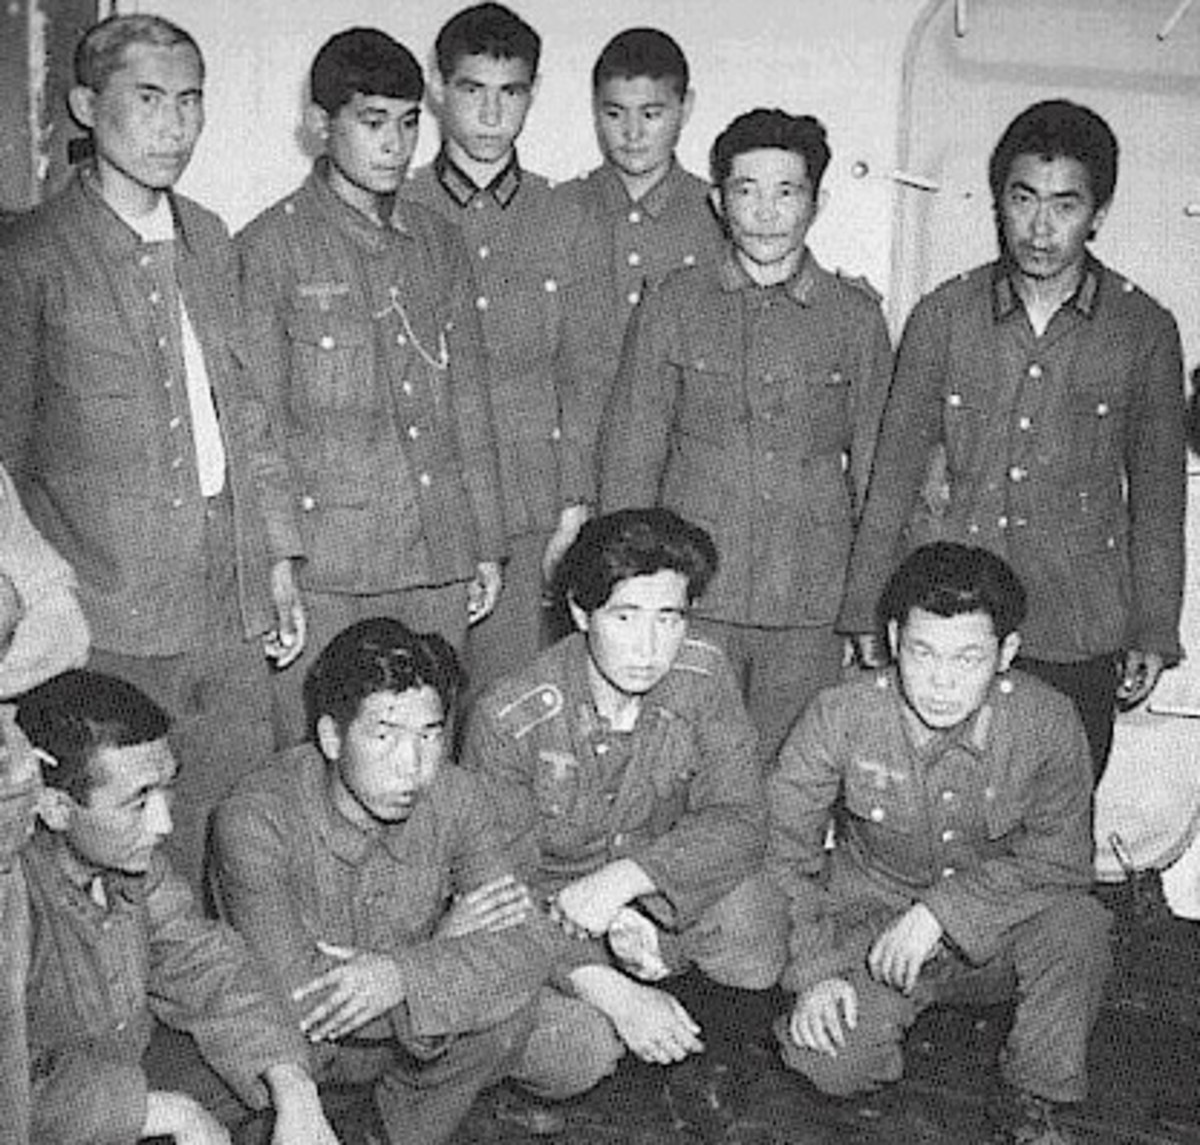 Korean soldiers dressed in German army uniforms. They were pressed into service by the Japanese, then the Soviets, then Germany, before being captured by Americans in France.